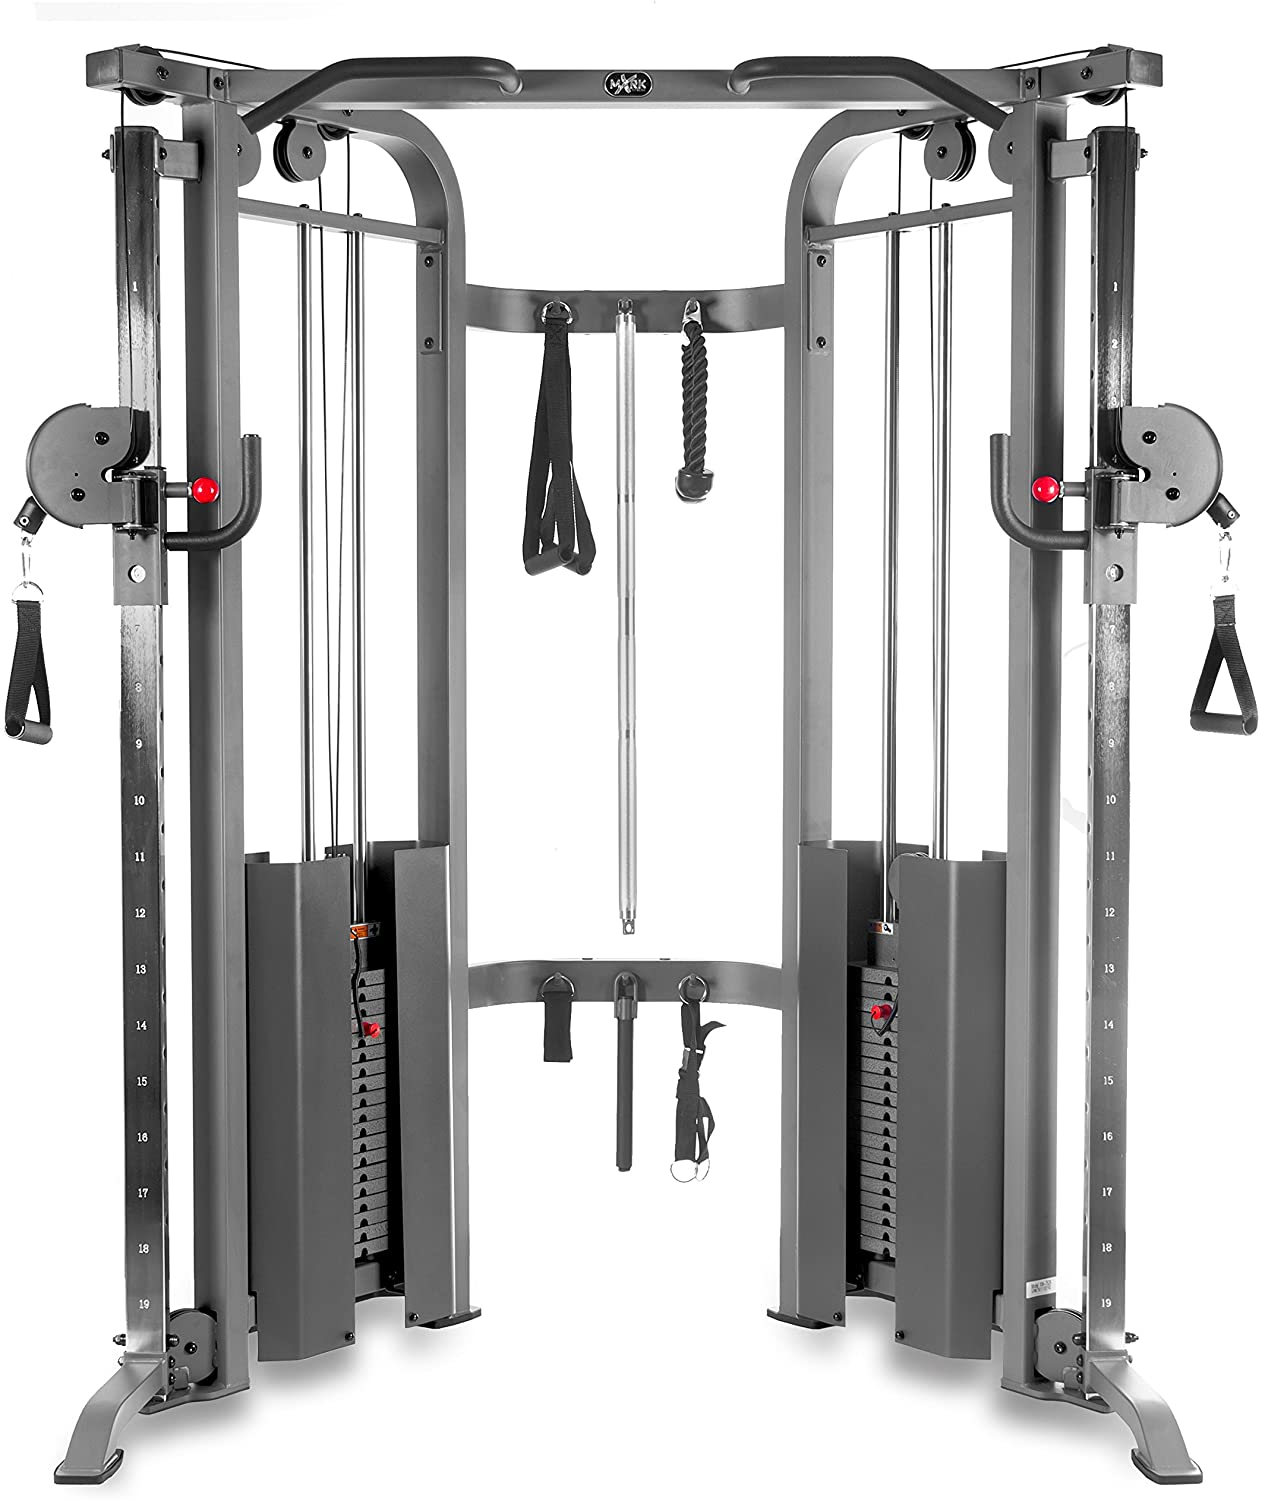 Top 10 Best Cable Machines for Home Gym in 2020 Reviews 6